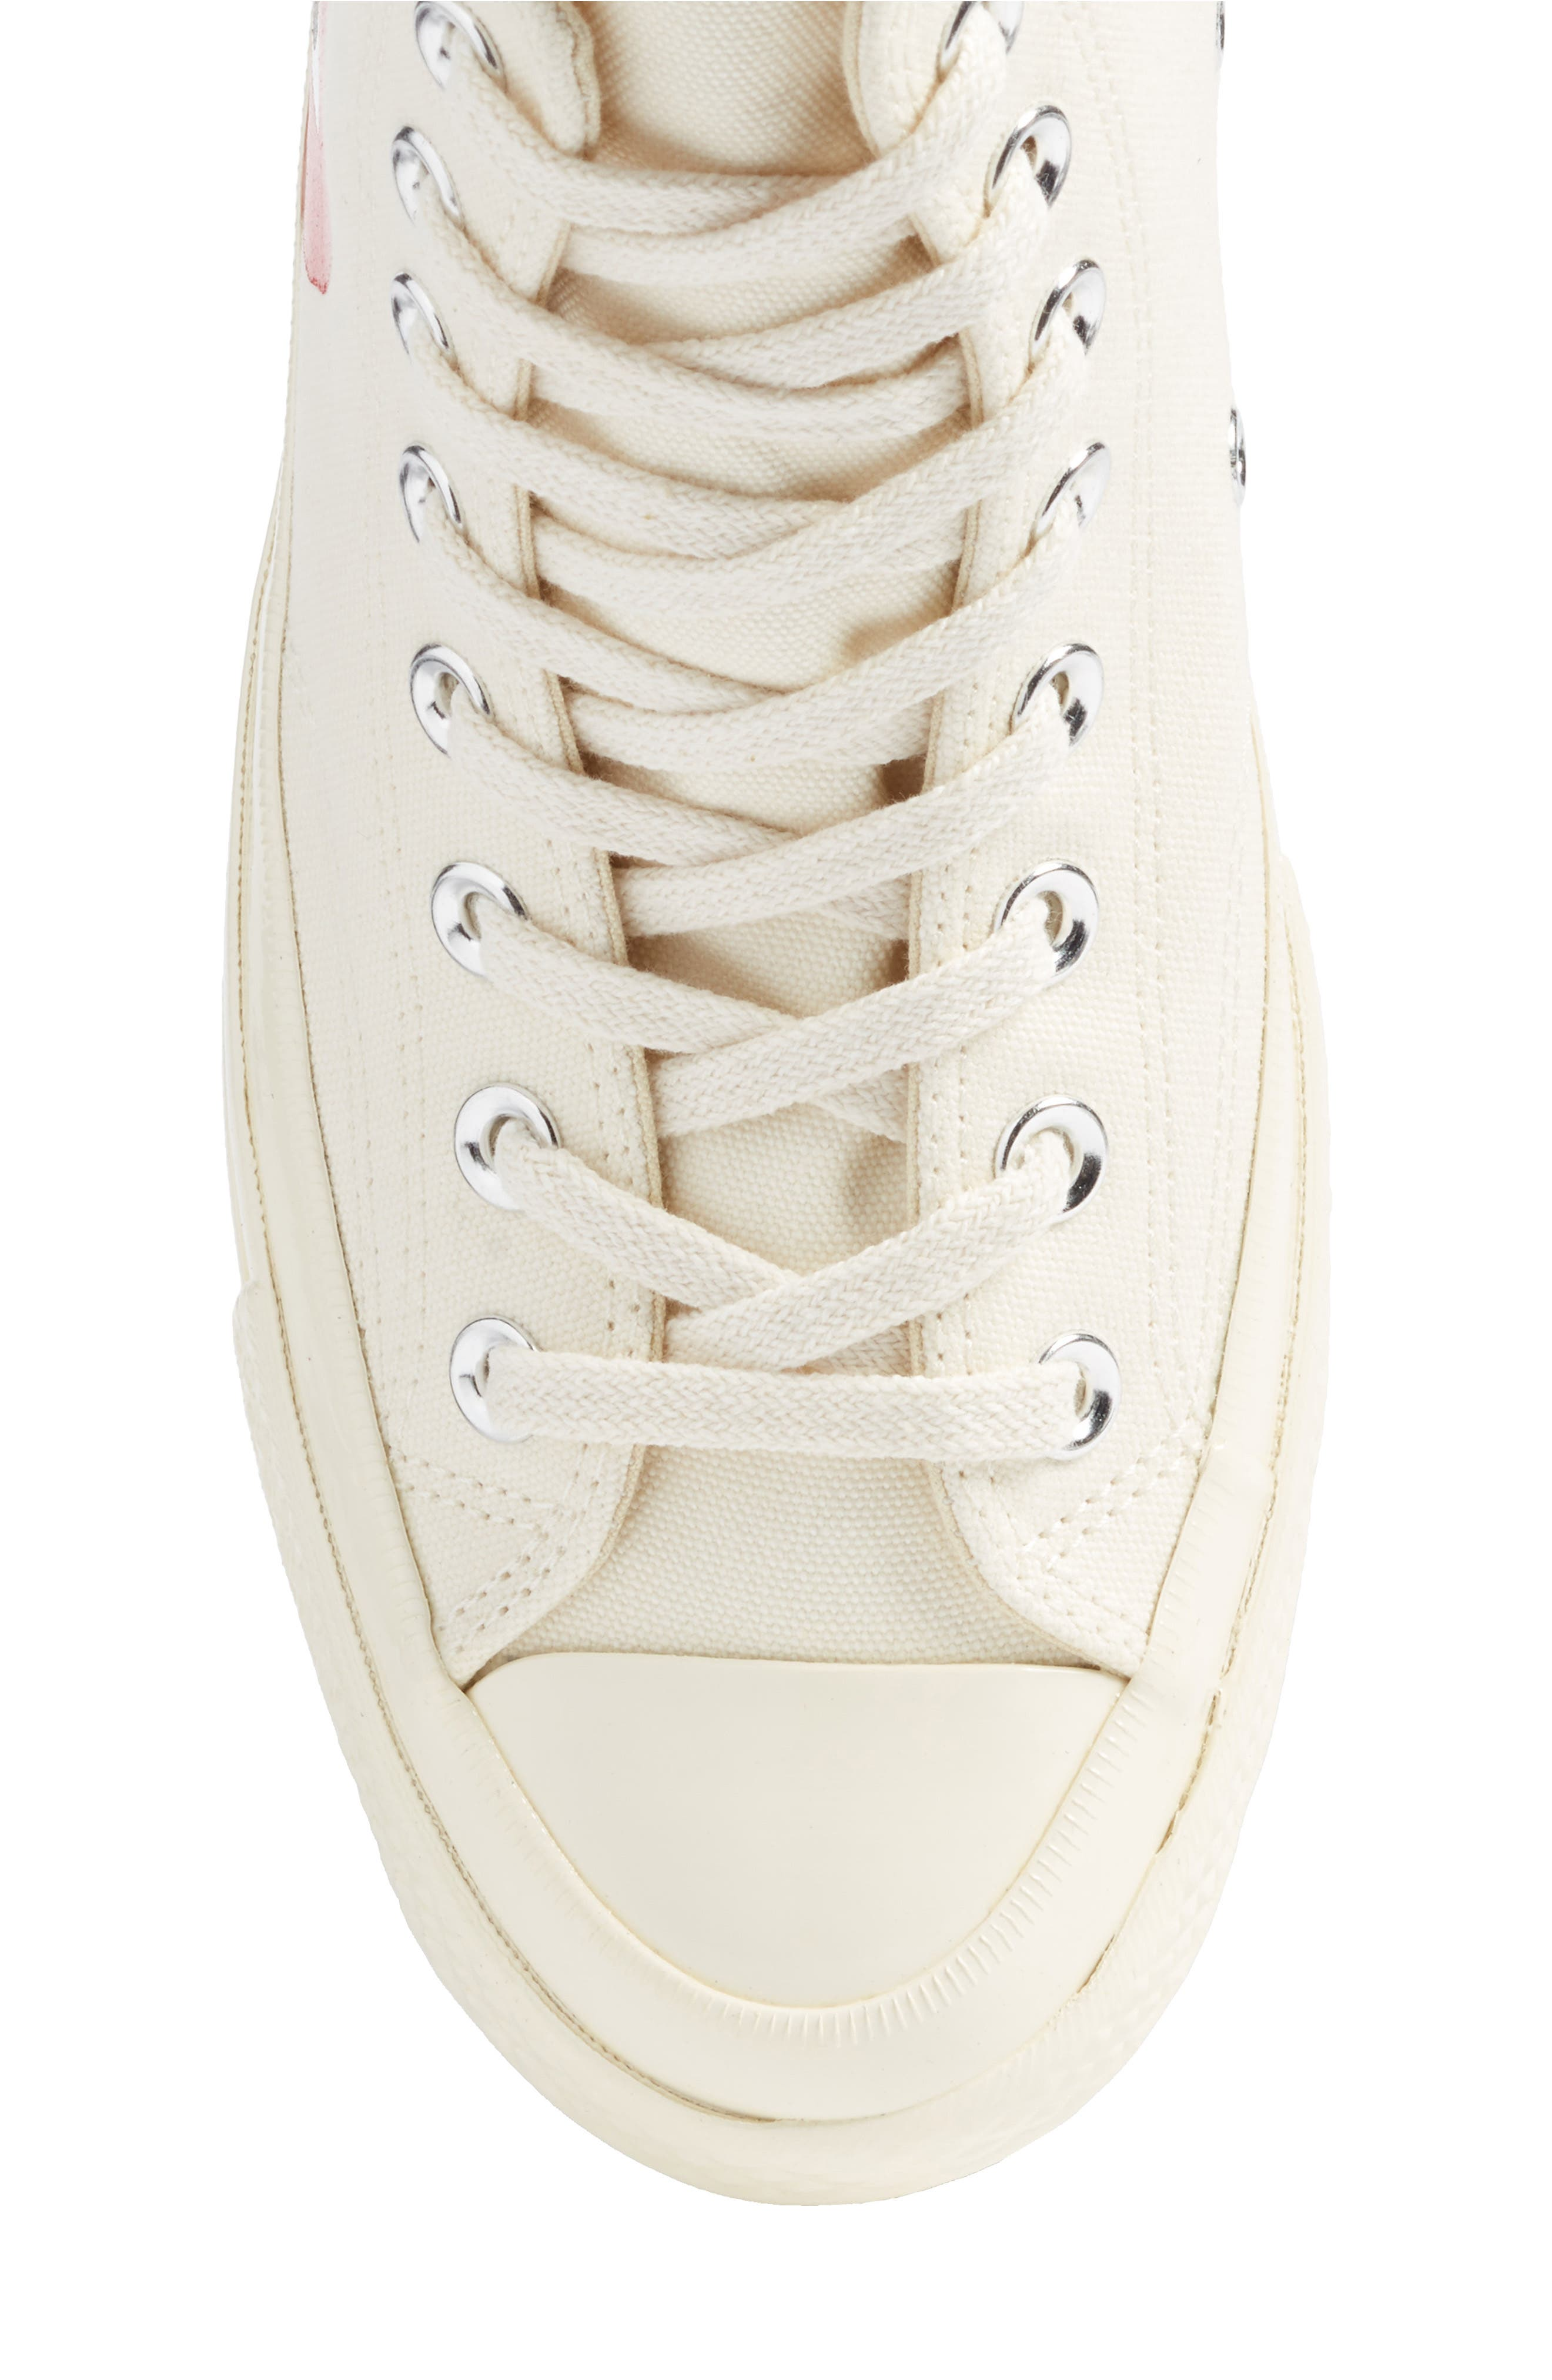 COMME DES GARÇONS,                             PLAY x Converse Chuck Taylor<sup>®</sup> Hidden Heart High Top Sneaker,                             Alternate thumbnail 5, color,                             WHITE CANVAS